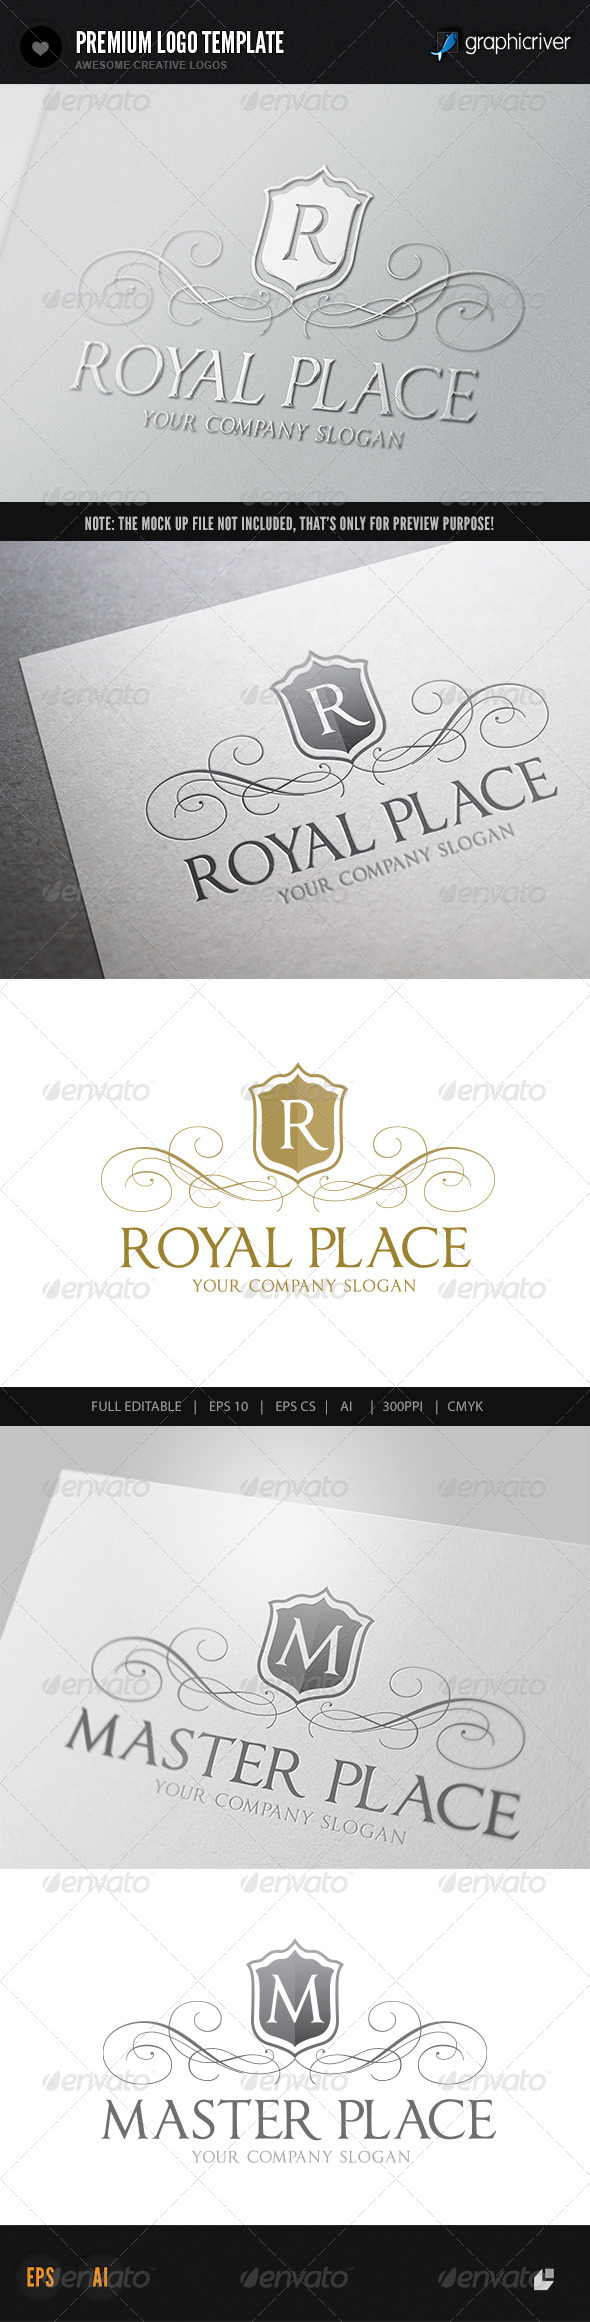 GraphicRiver Royal Place Logo V1 5740594